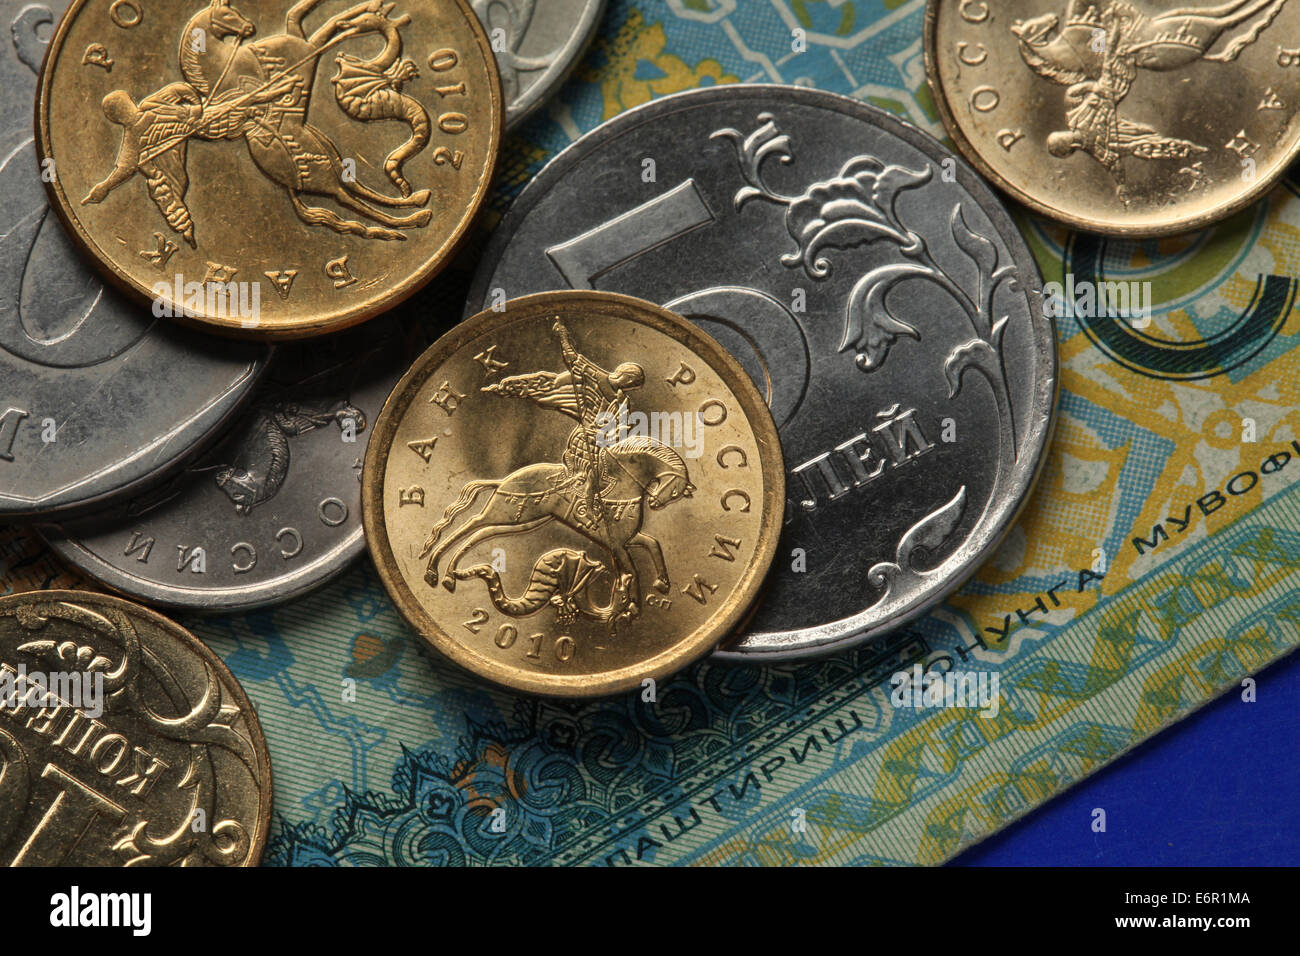 Coins of Russia. Saint George killing the Dragon depicted in Russian kopek coins. - Stock Image